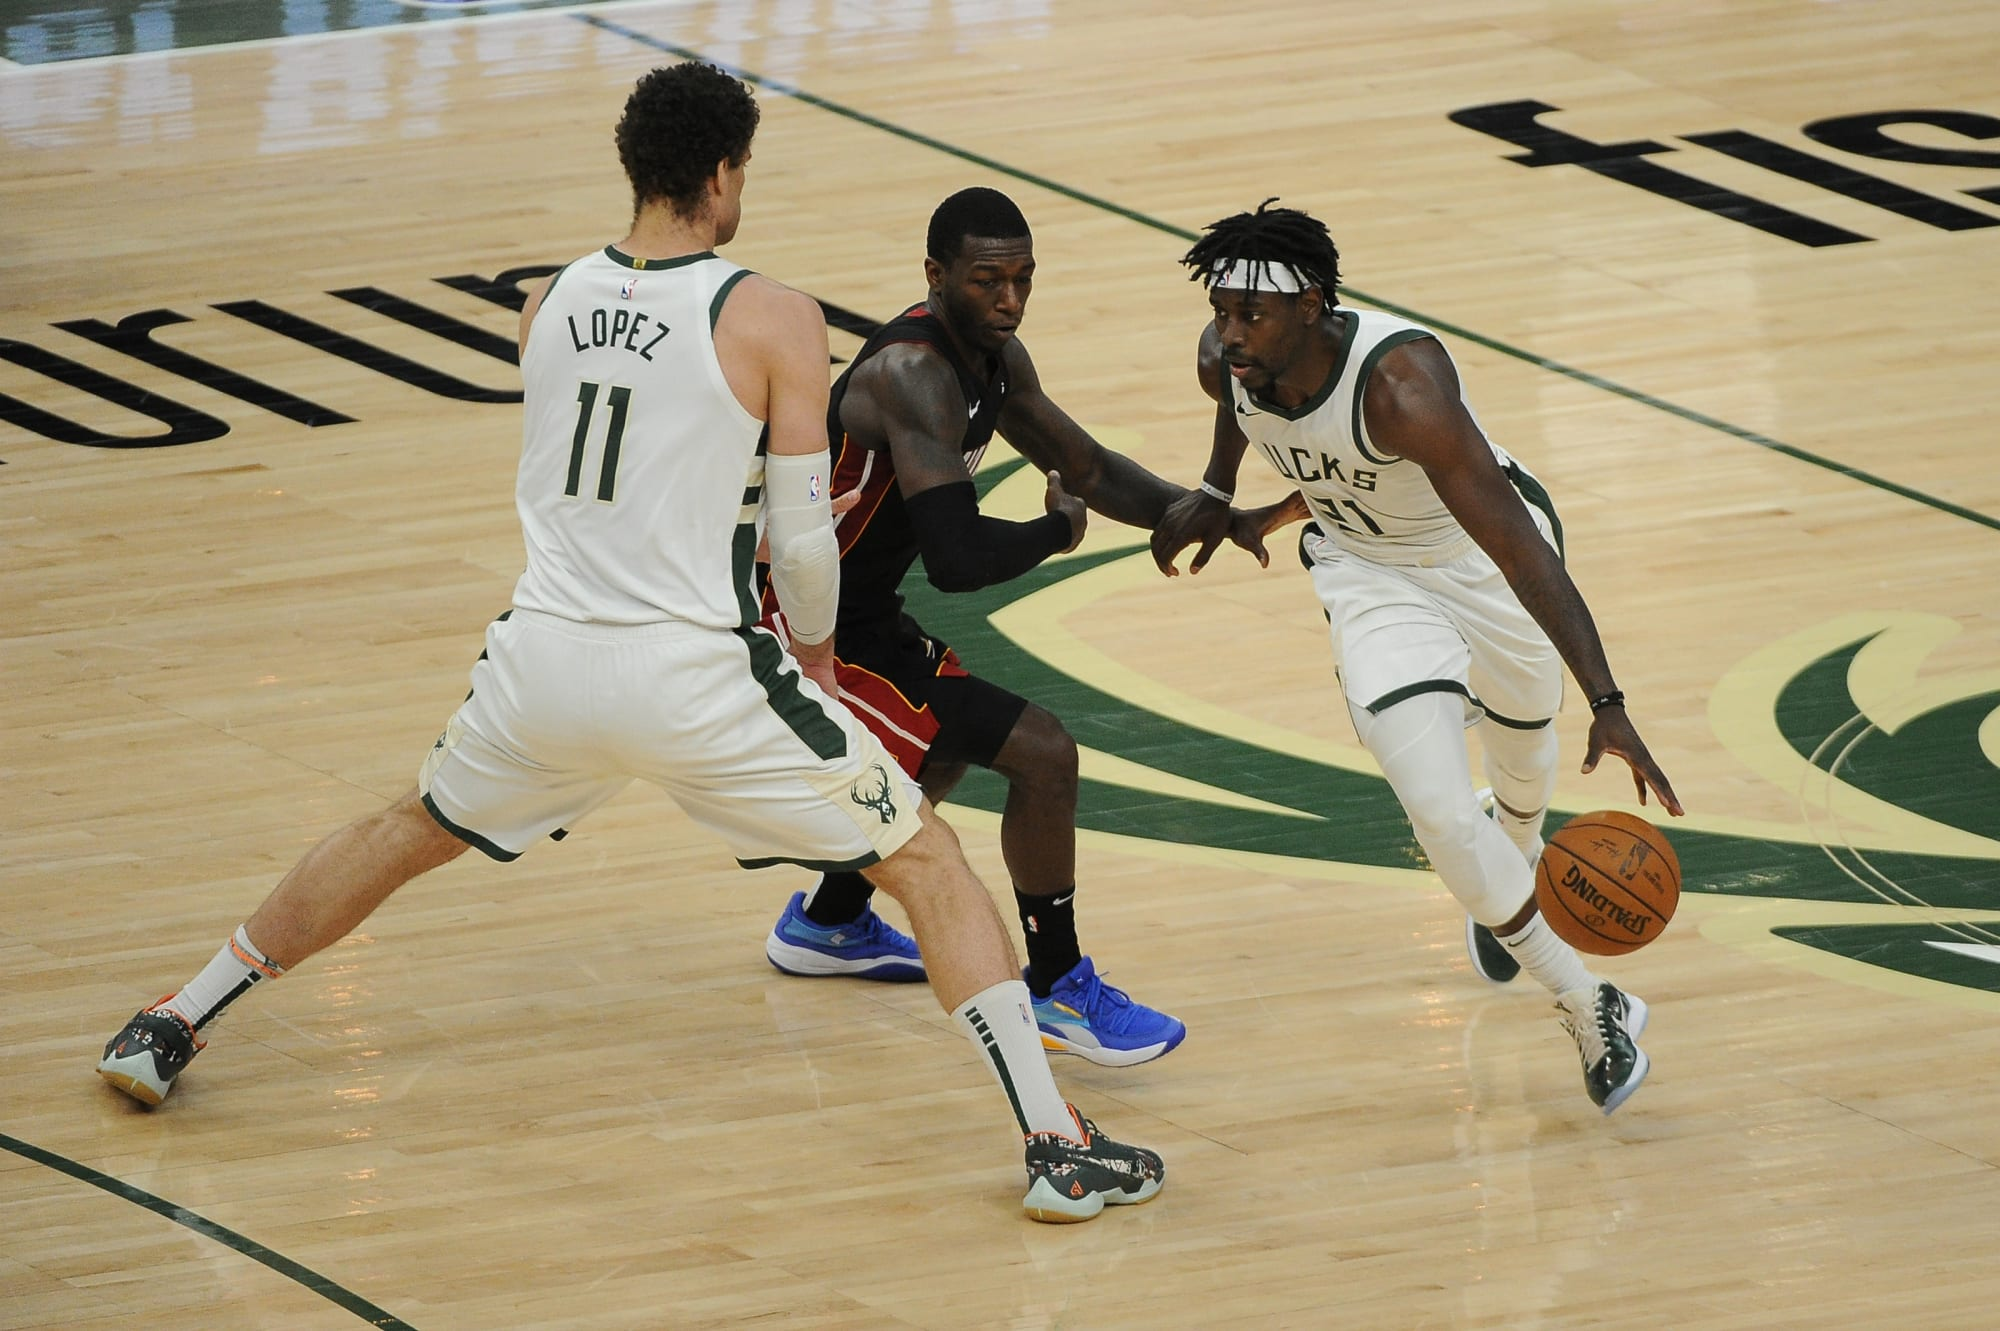 Miami Heat: Seed-costing defeat to likely Round 1 opponent